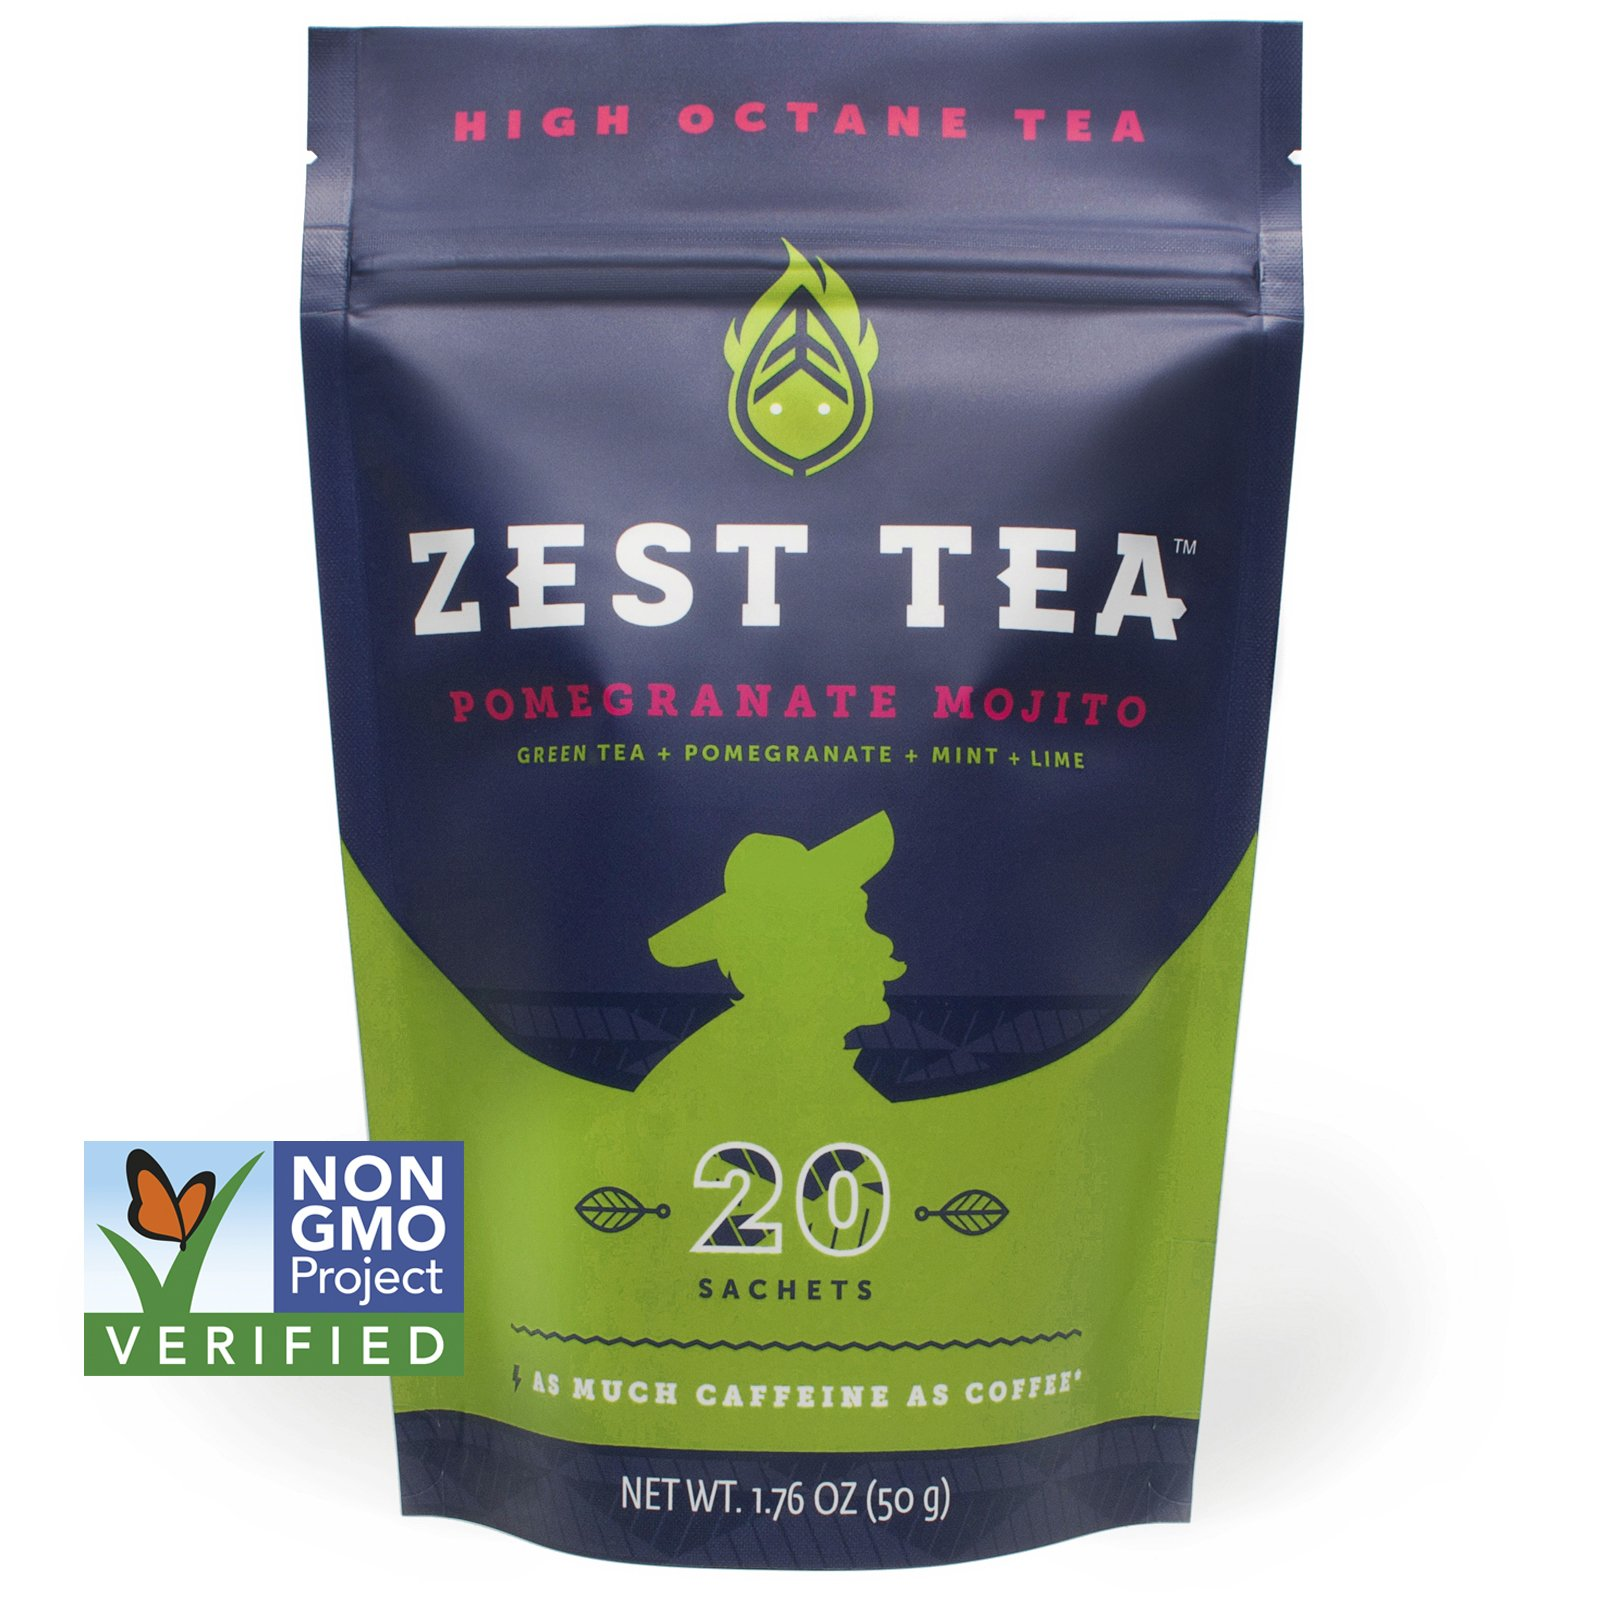 Pomegranate Mojito Green Energy Tea - Healthy Coffee Substitute - 140 mg caffeine per cup (20 Sachets) (50 g)